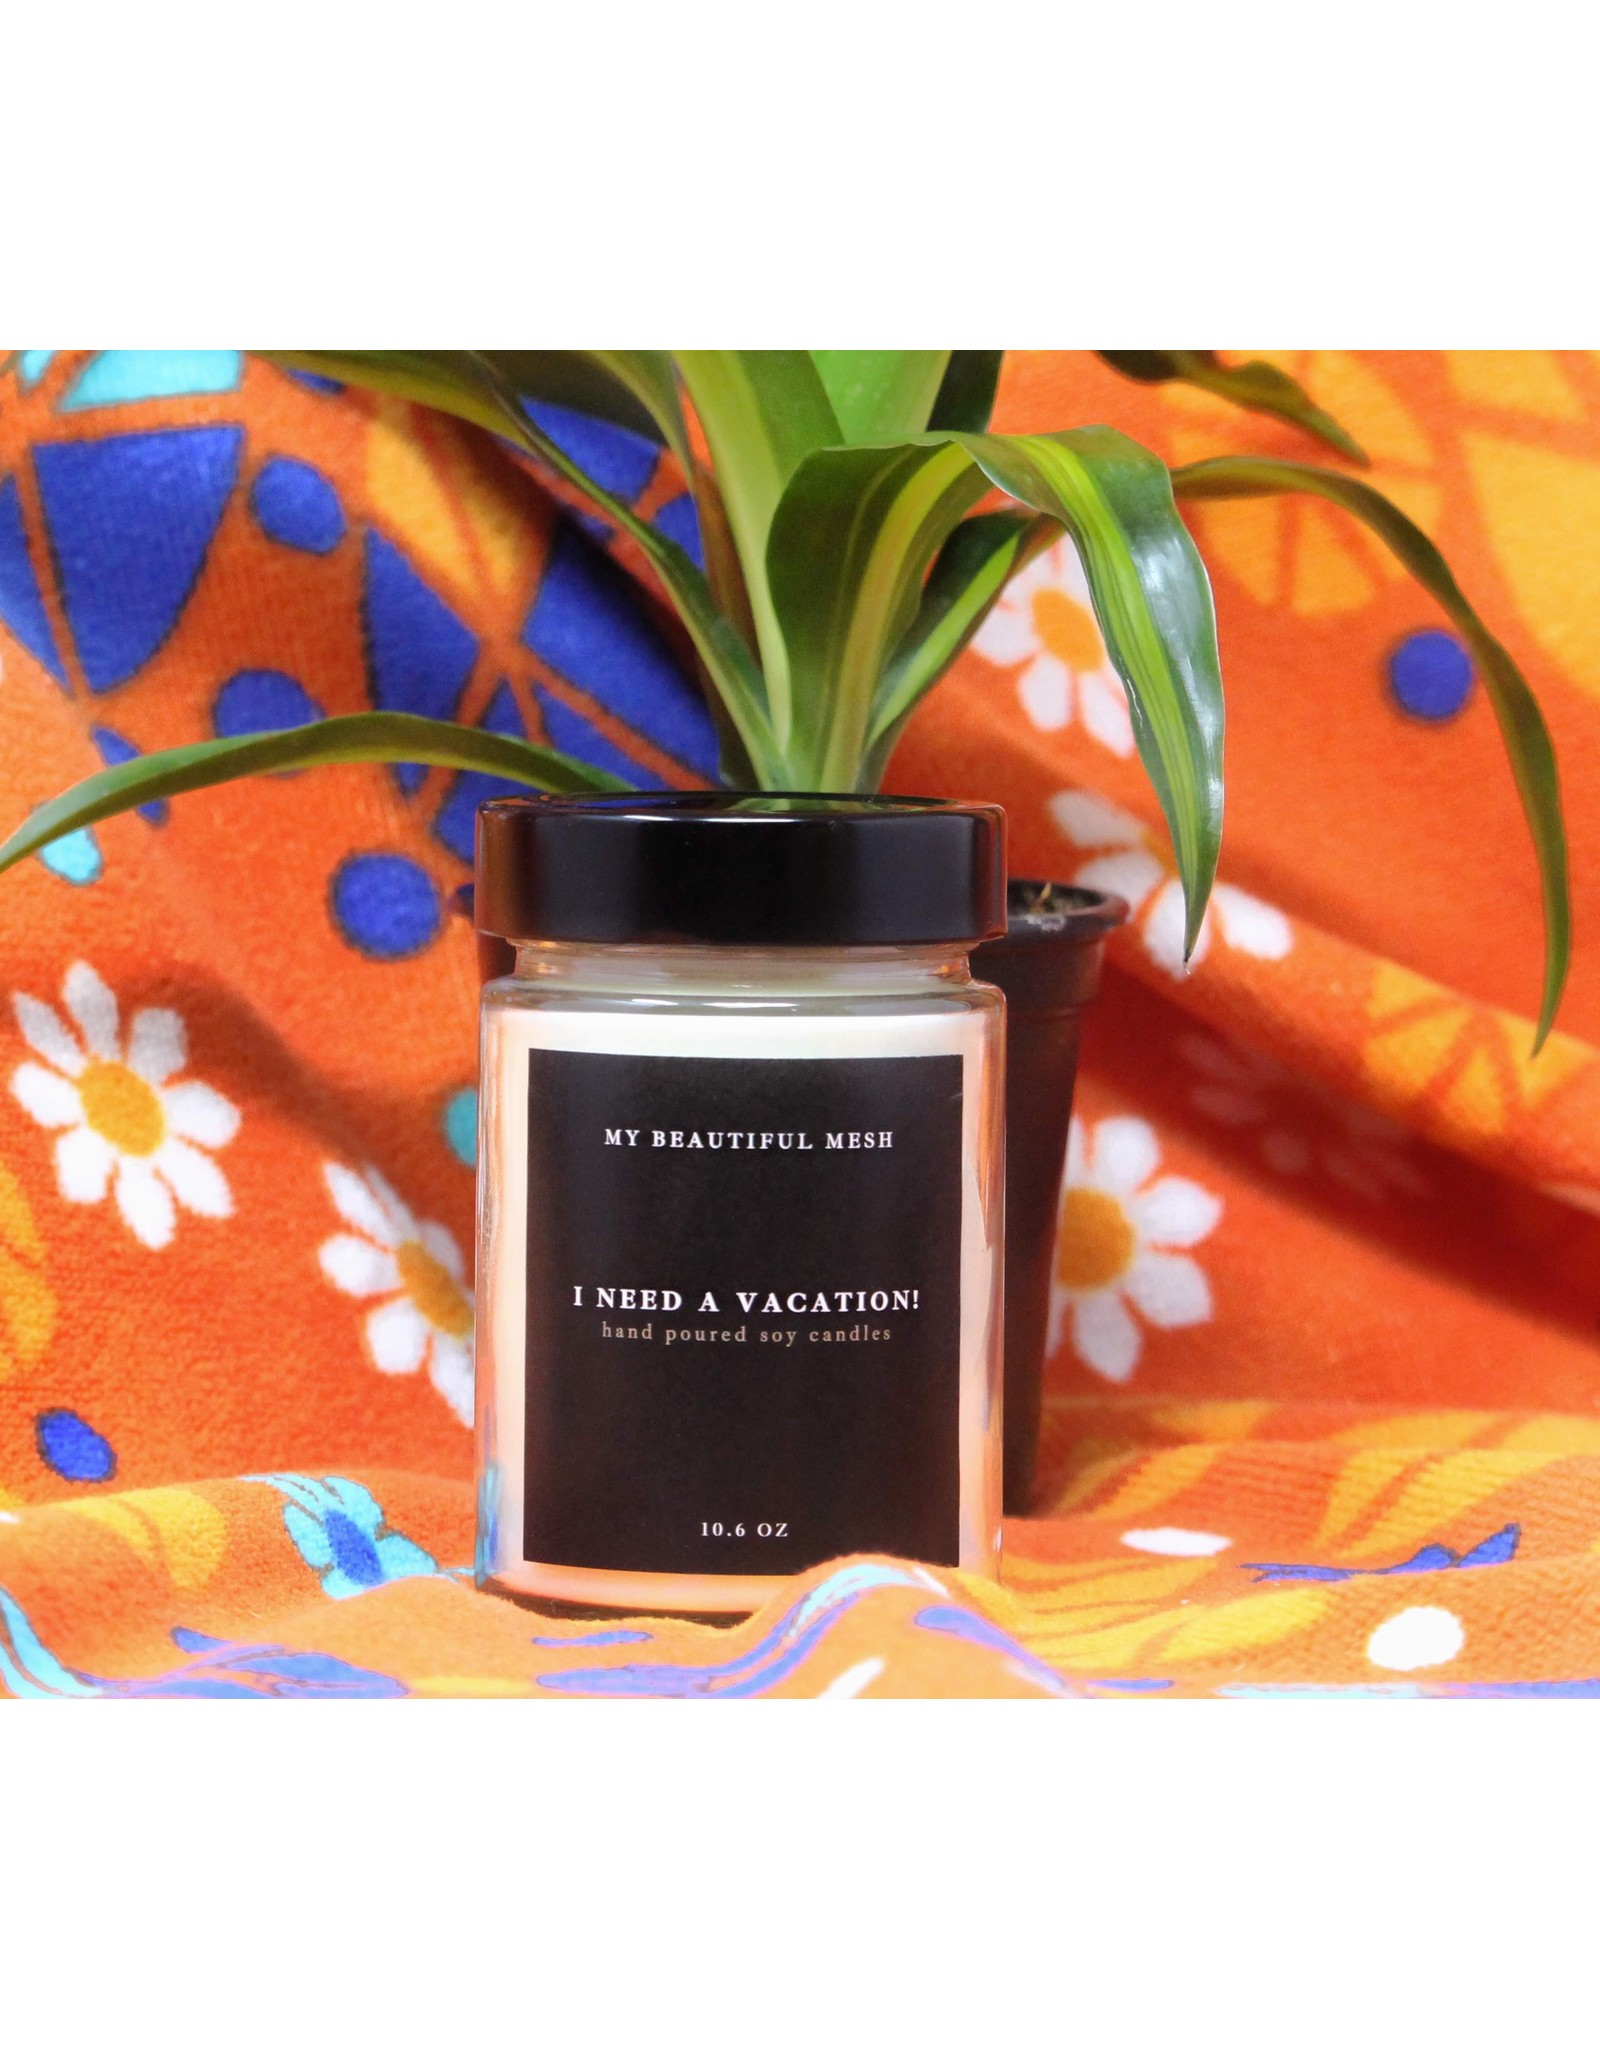 My Beautiful Mesh I Need A Vacation!, Candle 10.6 oz (Summer Collection)